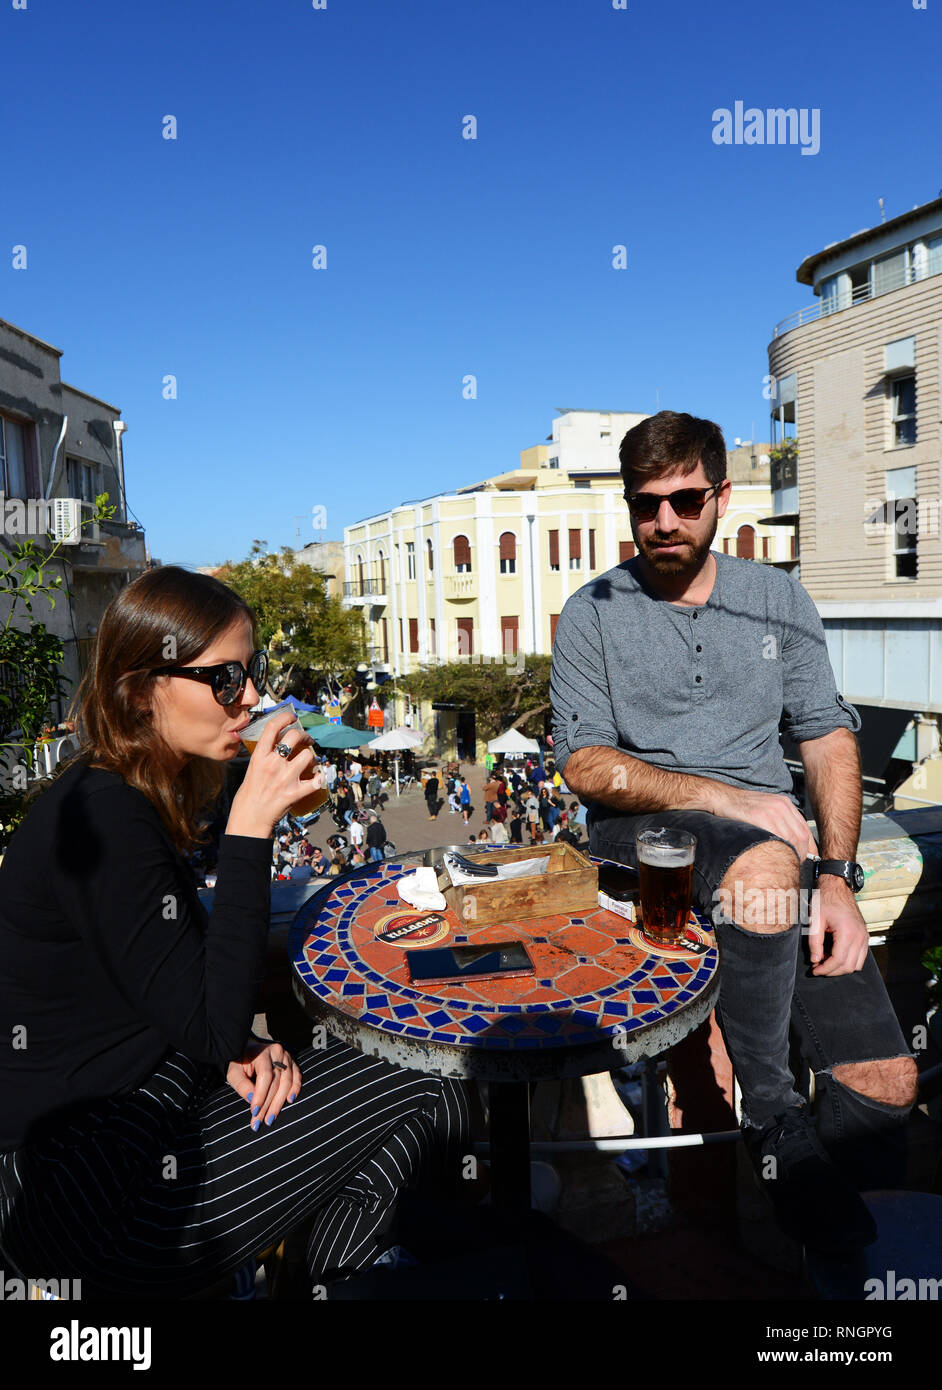 A couple enjoying a glass of cold beer at 'The Prince' bar in Nahalat Benyamin market in Tel-Aviv. - Stock Image